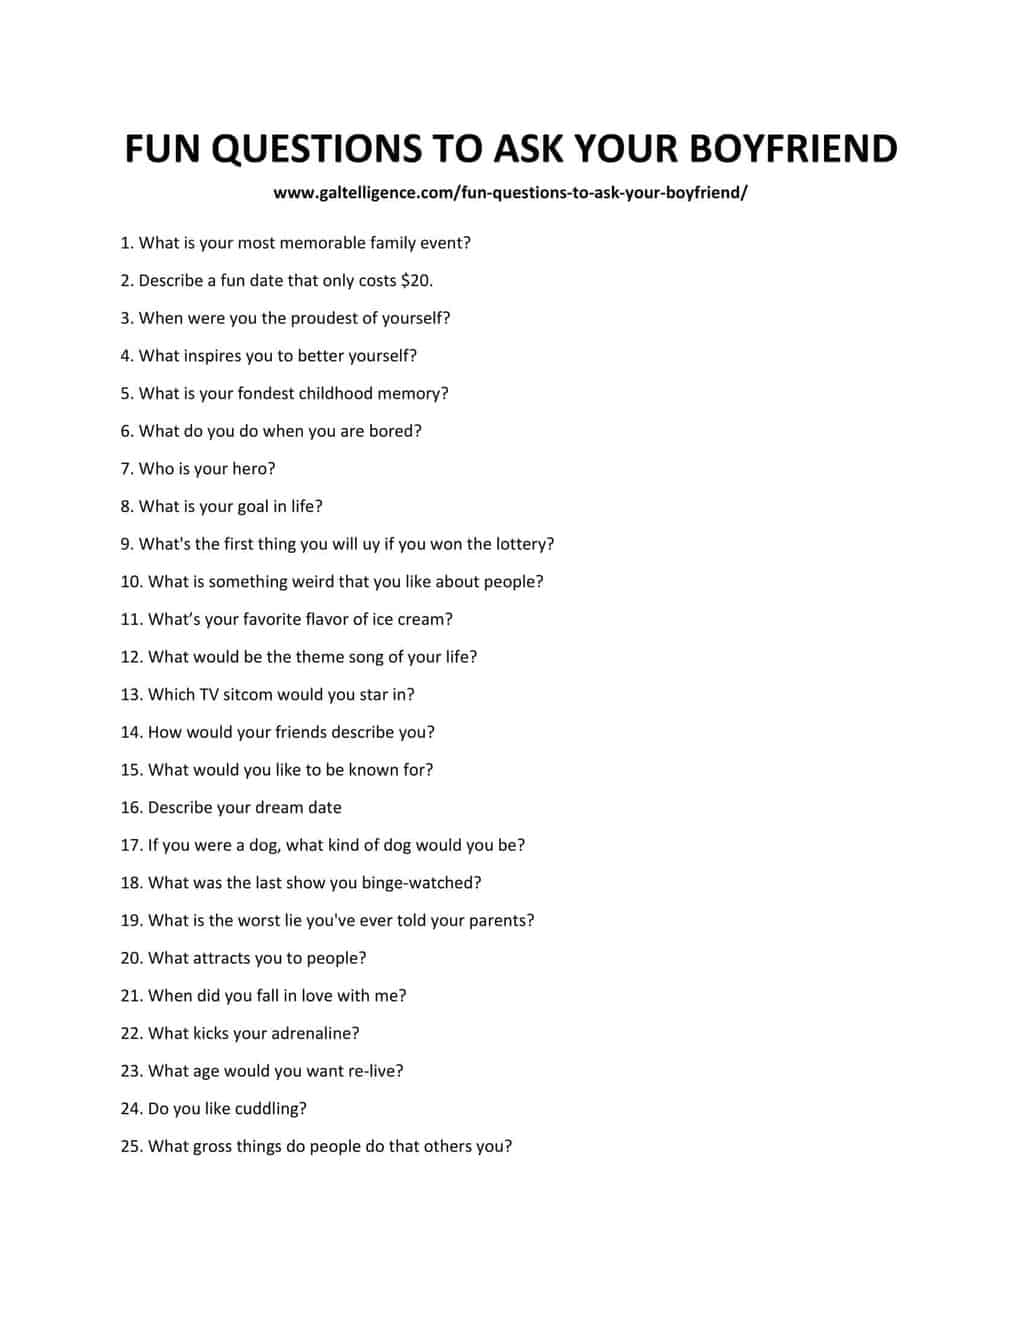 List of Fun Questions to ask your Boyfriend